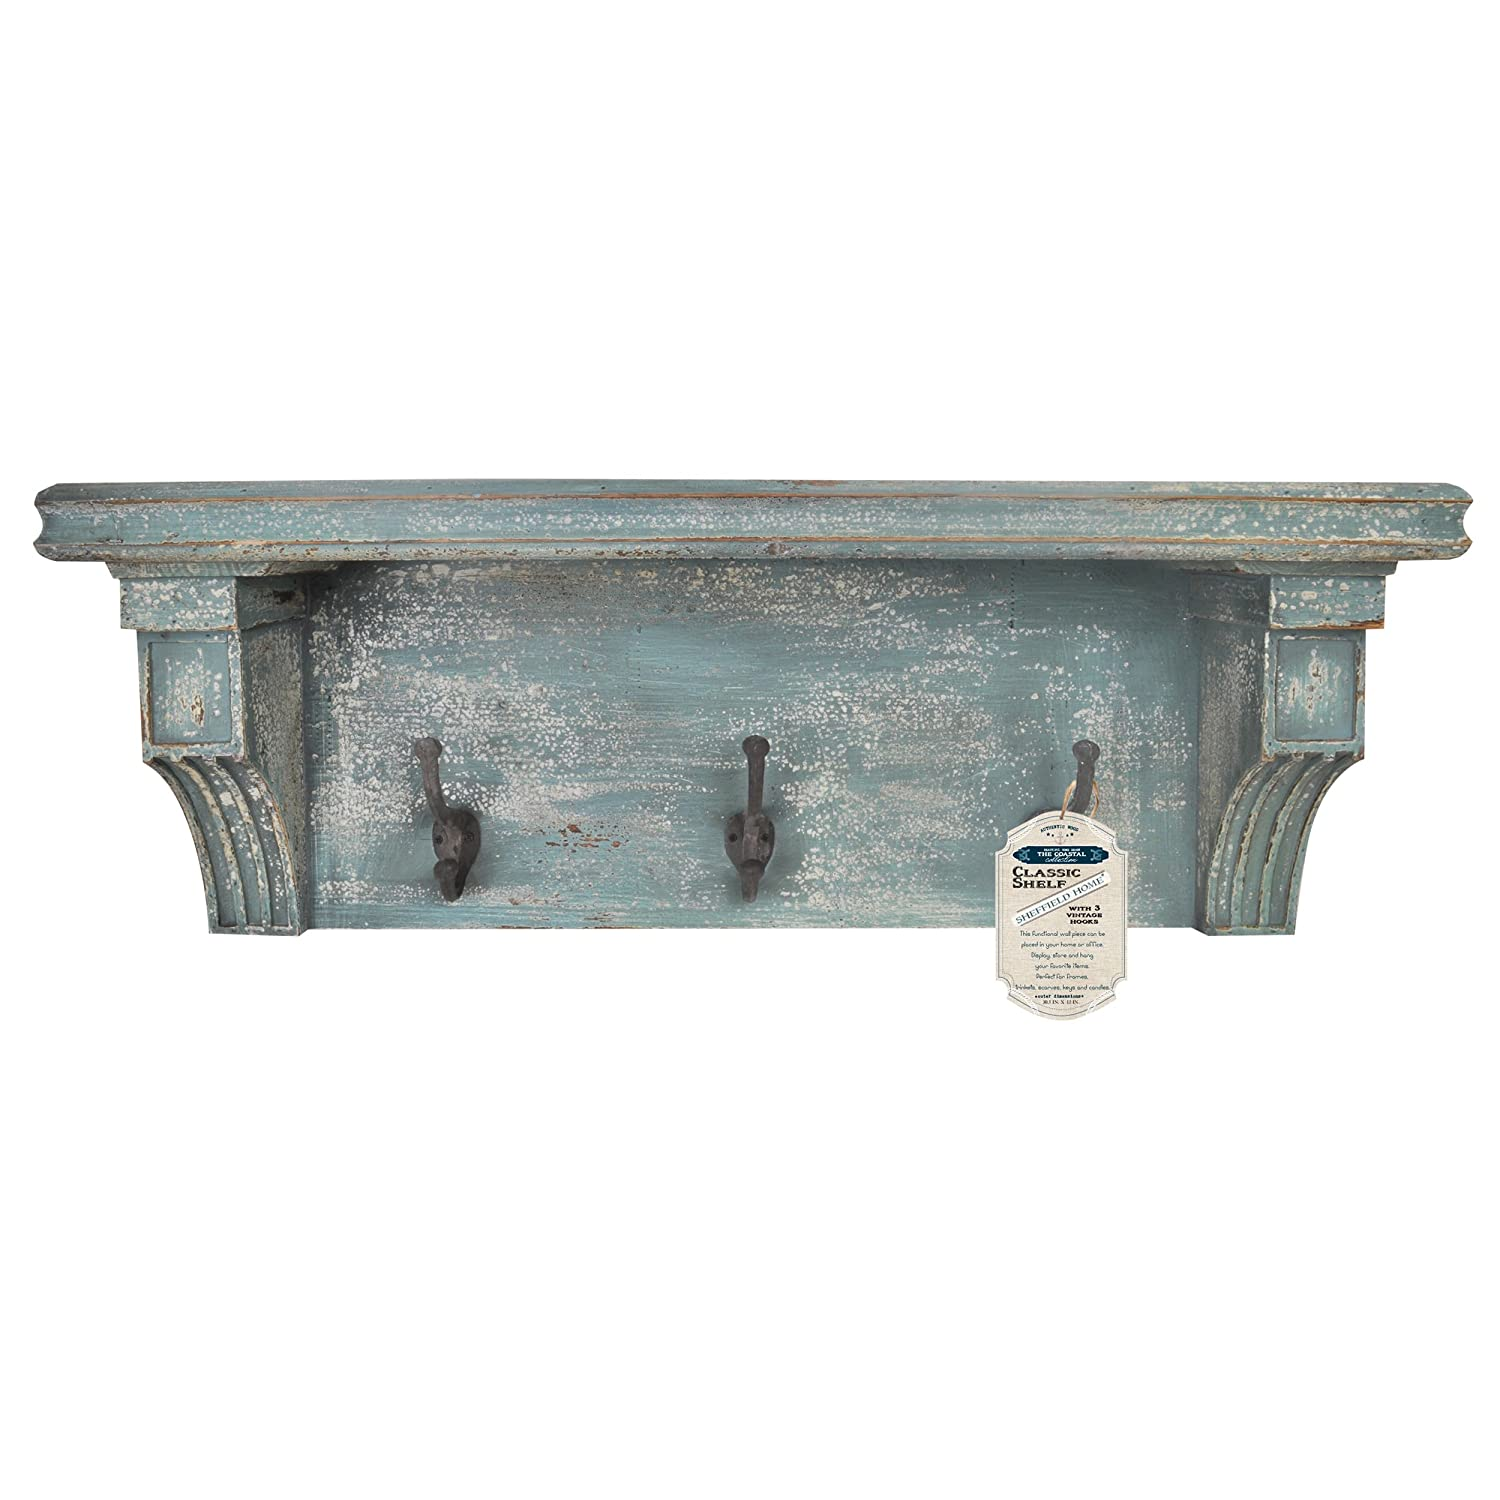 Shabby chic floating shelves ishoppink blog distressed rustic solid wood vintage wall shelf with hooks distressed blue amipublicfo Gallery